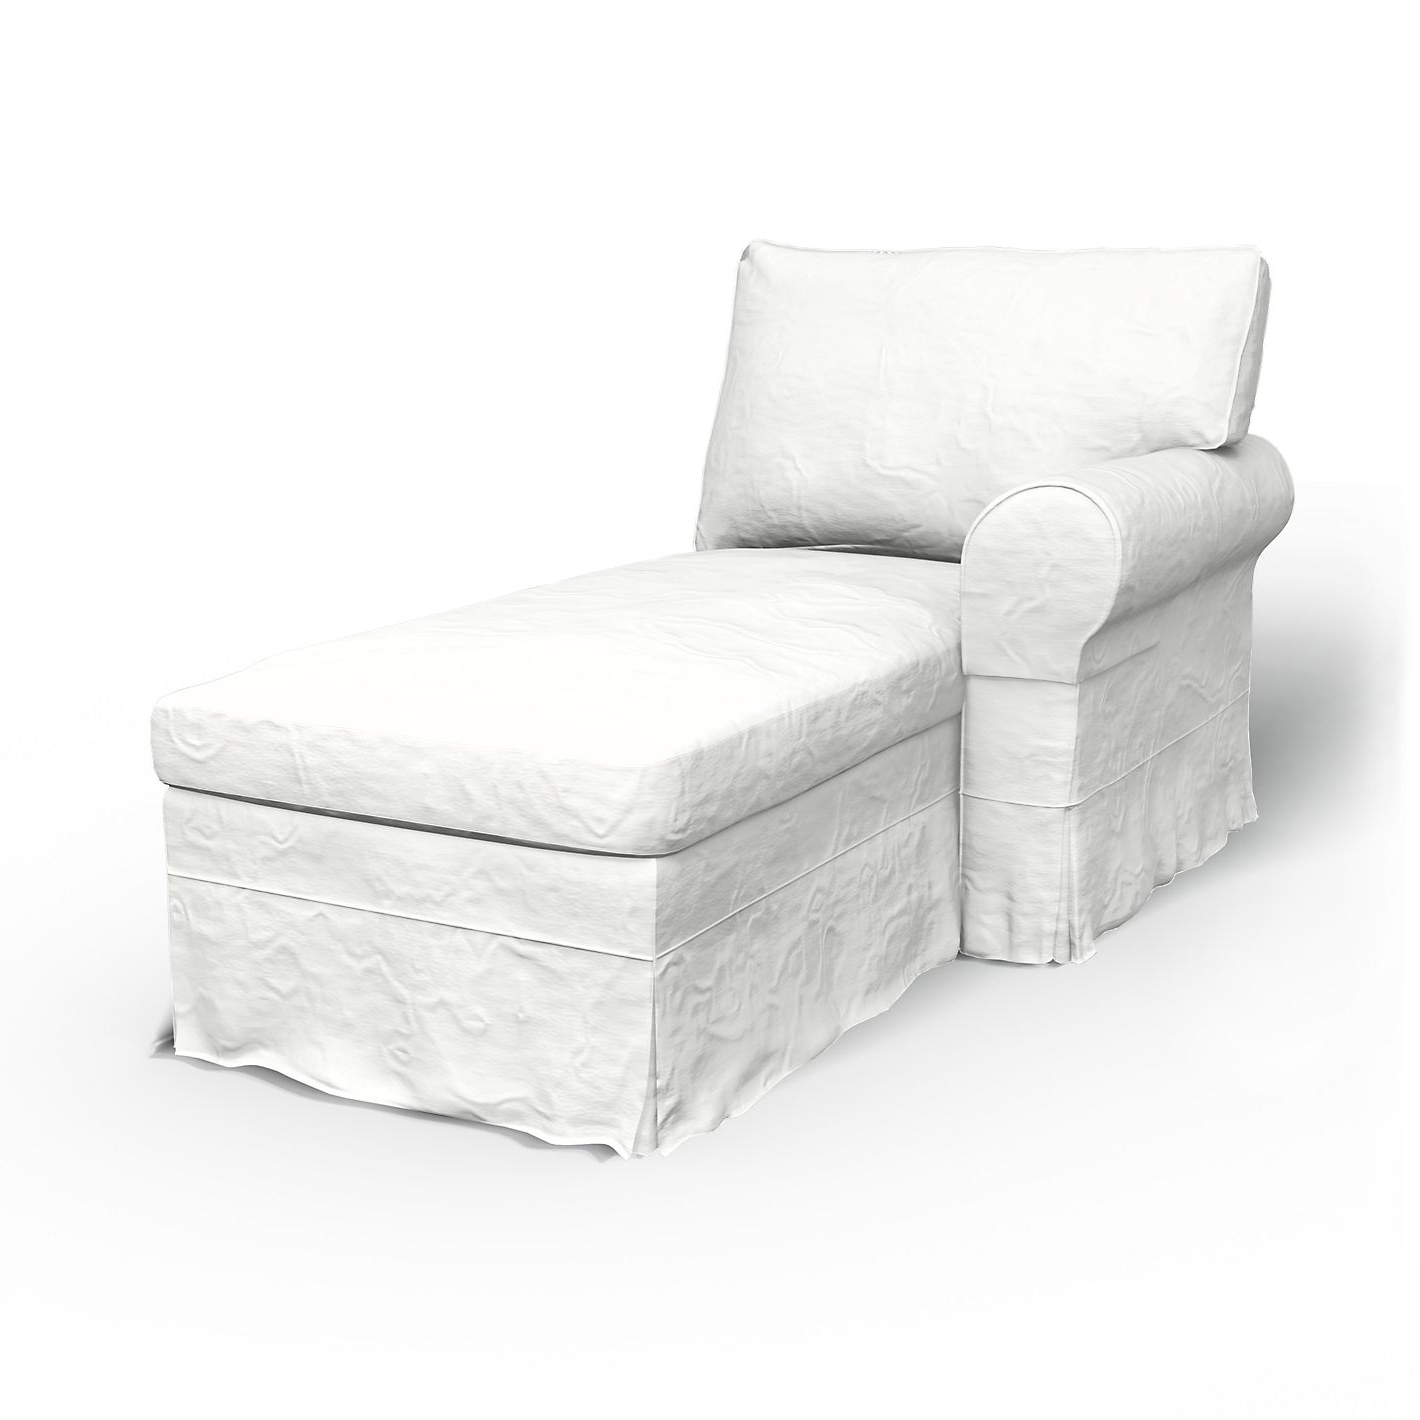 2018 Cover For Chaise Lounge Chair • Lounge Chairs Ideas Within Chaise Lounge Chairs With Arms Slipcover (View 14 of 15)